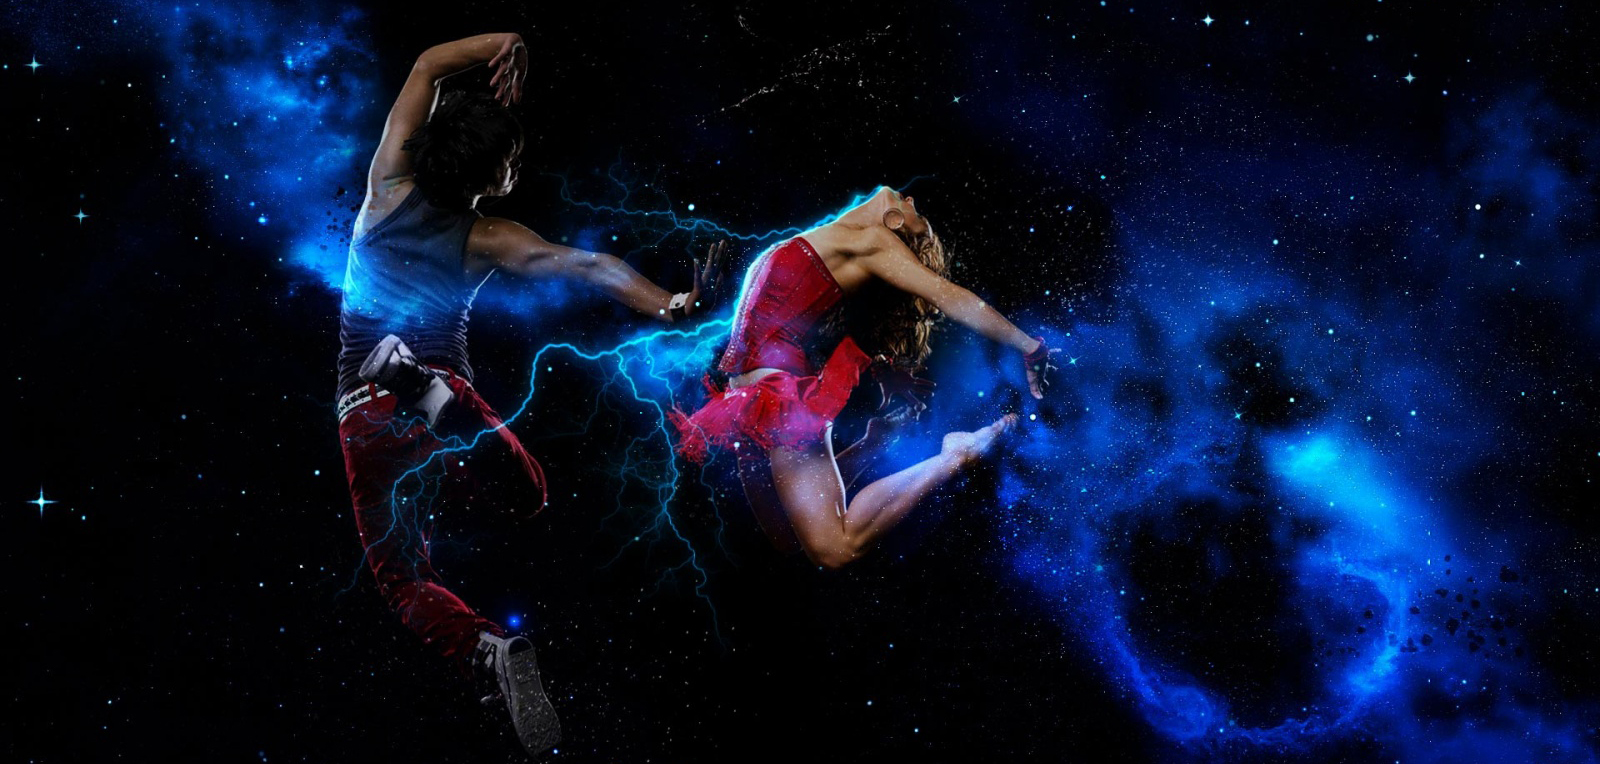 music-dance-hd-wallpaper-50363-hd-wallpapers-background